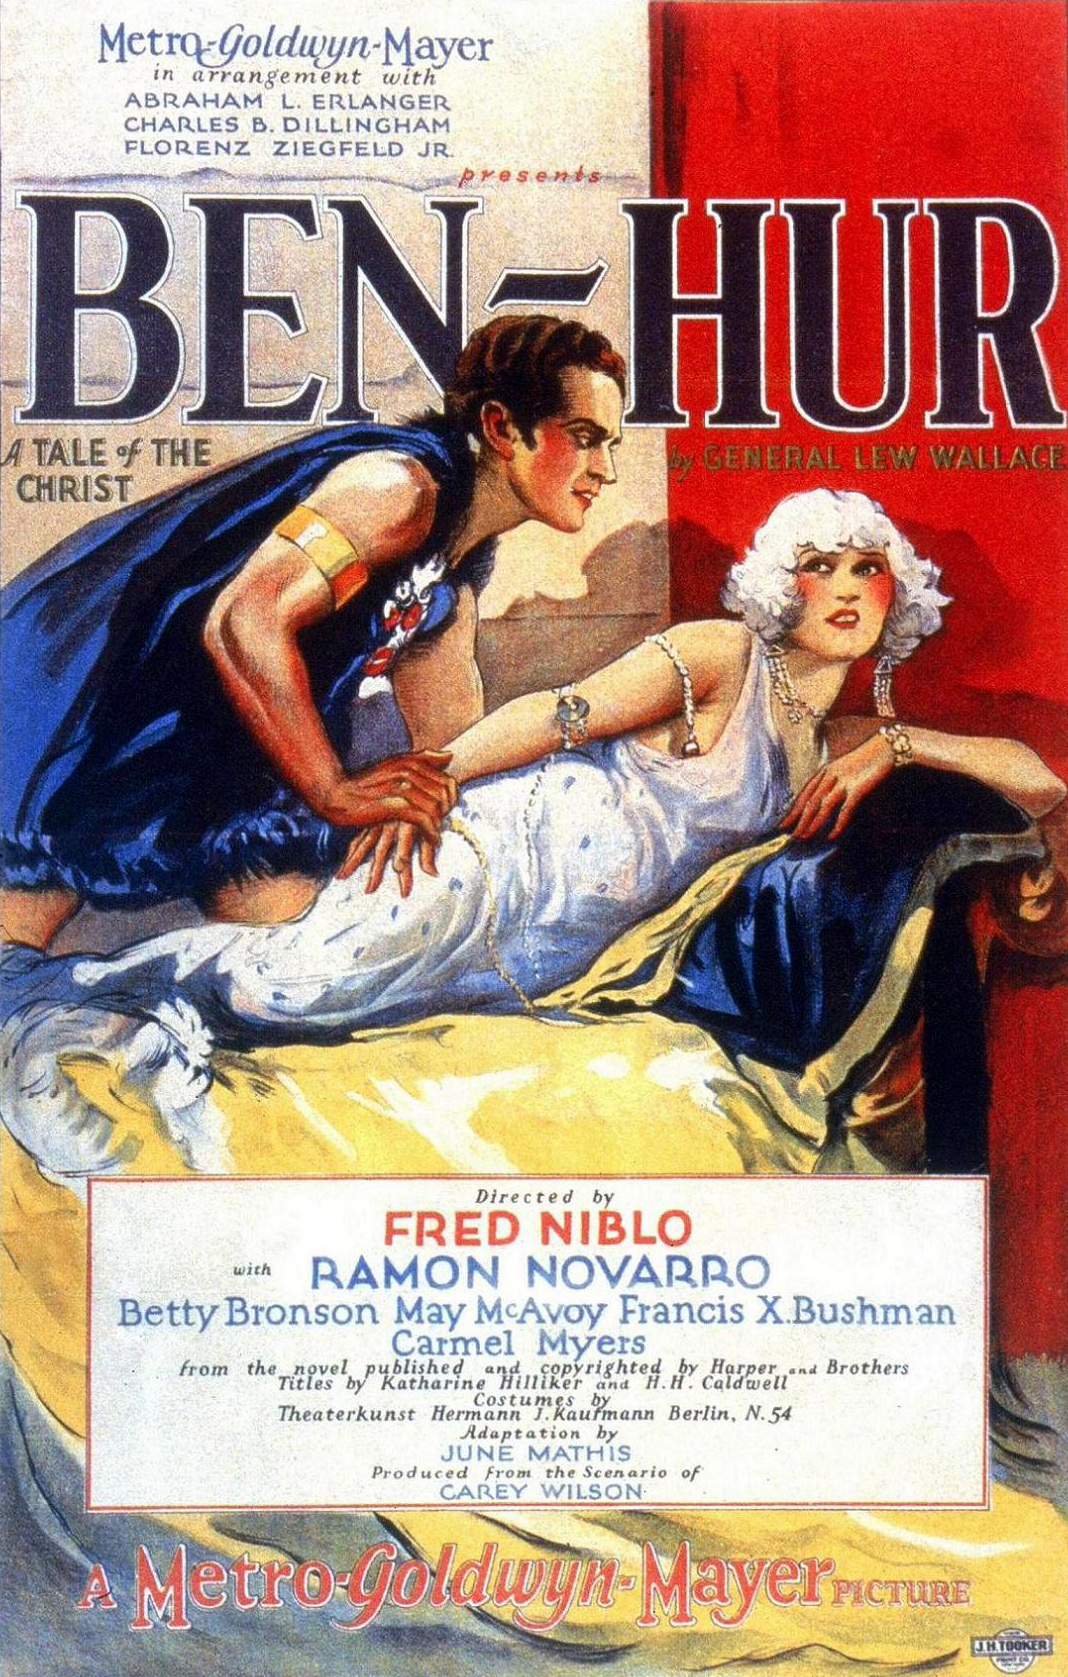 Ben Hur, A Tale of the Christ